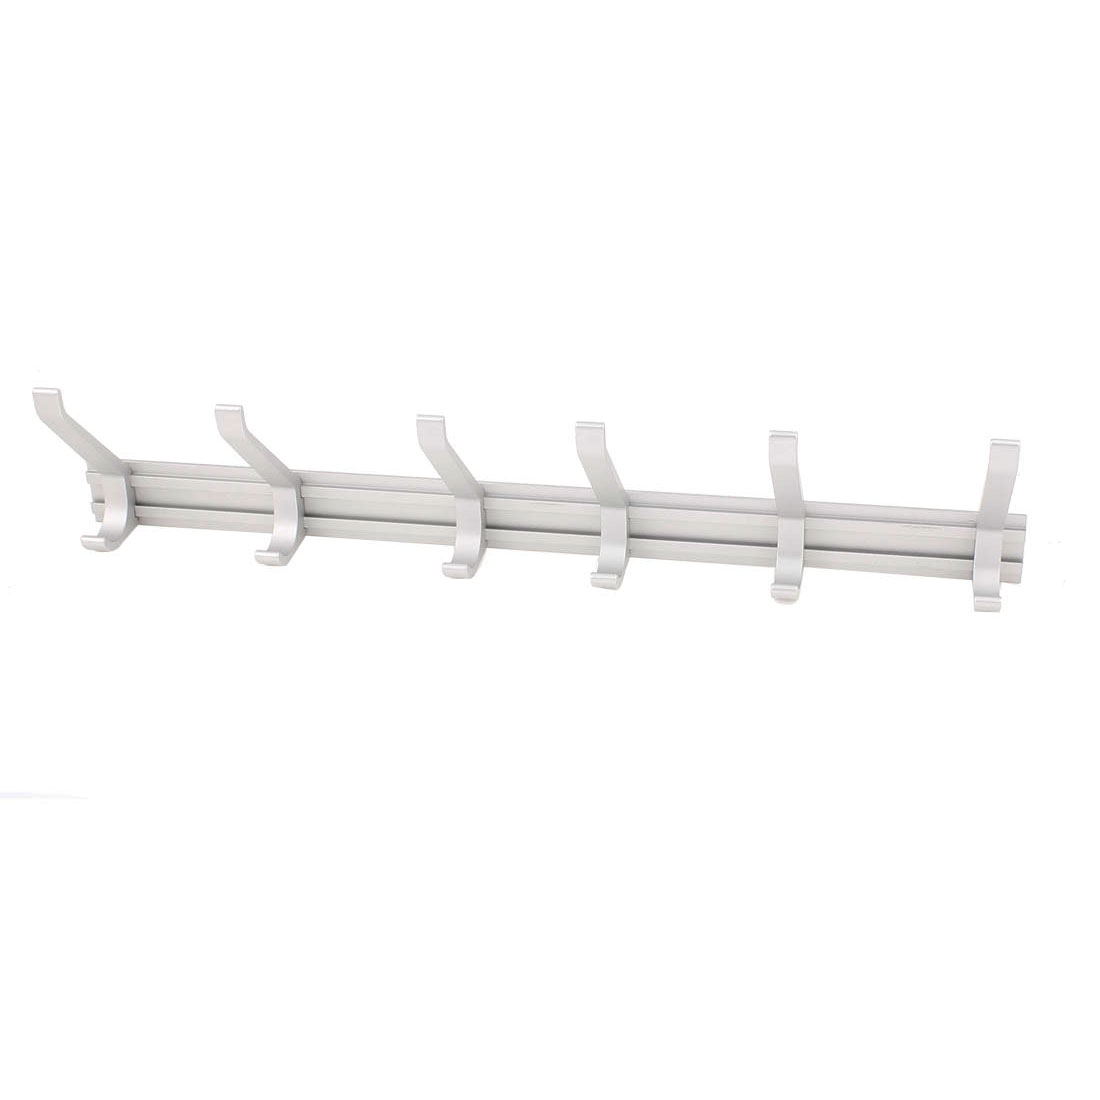 Bathroom Aluminum Wall Mount Towel Coat Hat Bag 6 Hooks Hanger Rack Silver Tone